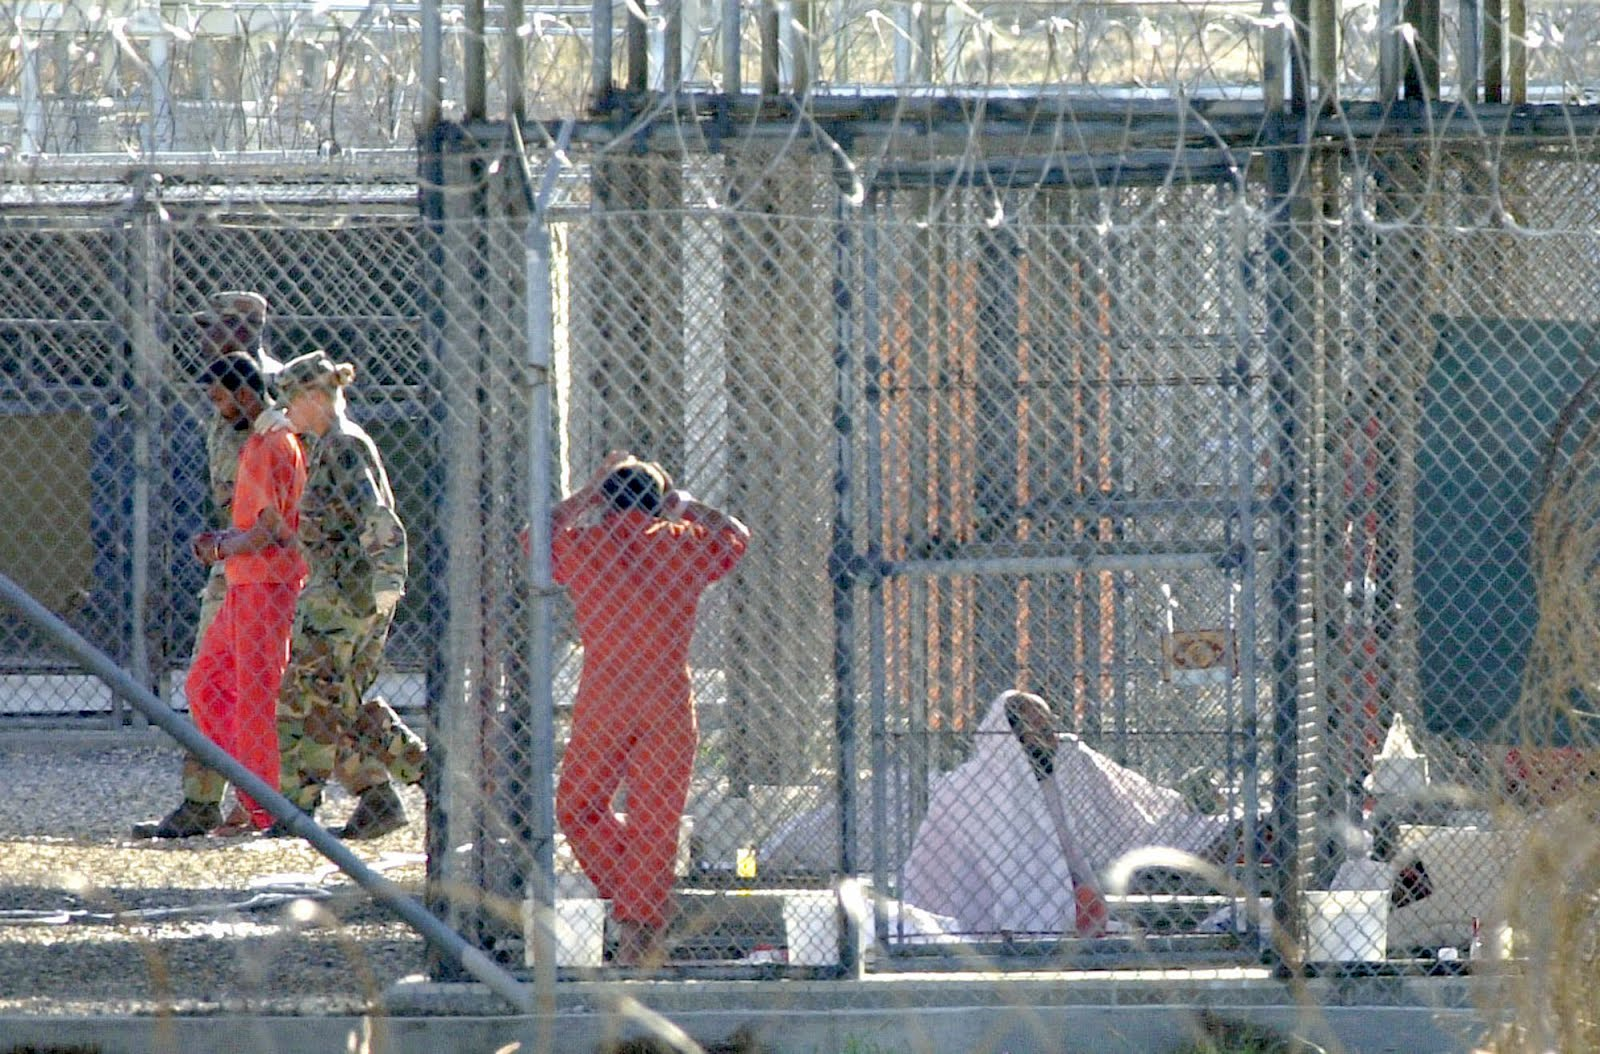 This Week in Guantánamo: 2014 and 2002 Thumbnail Image